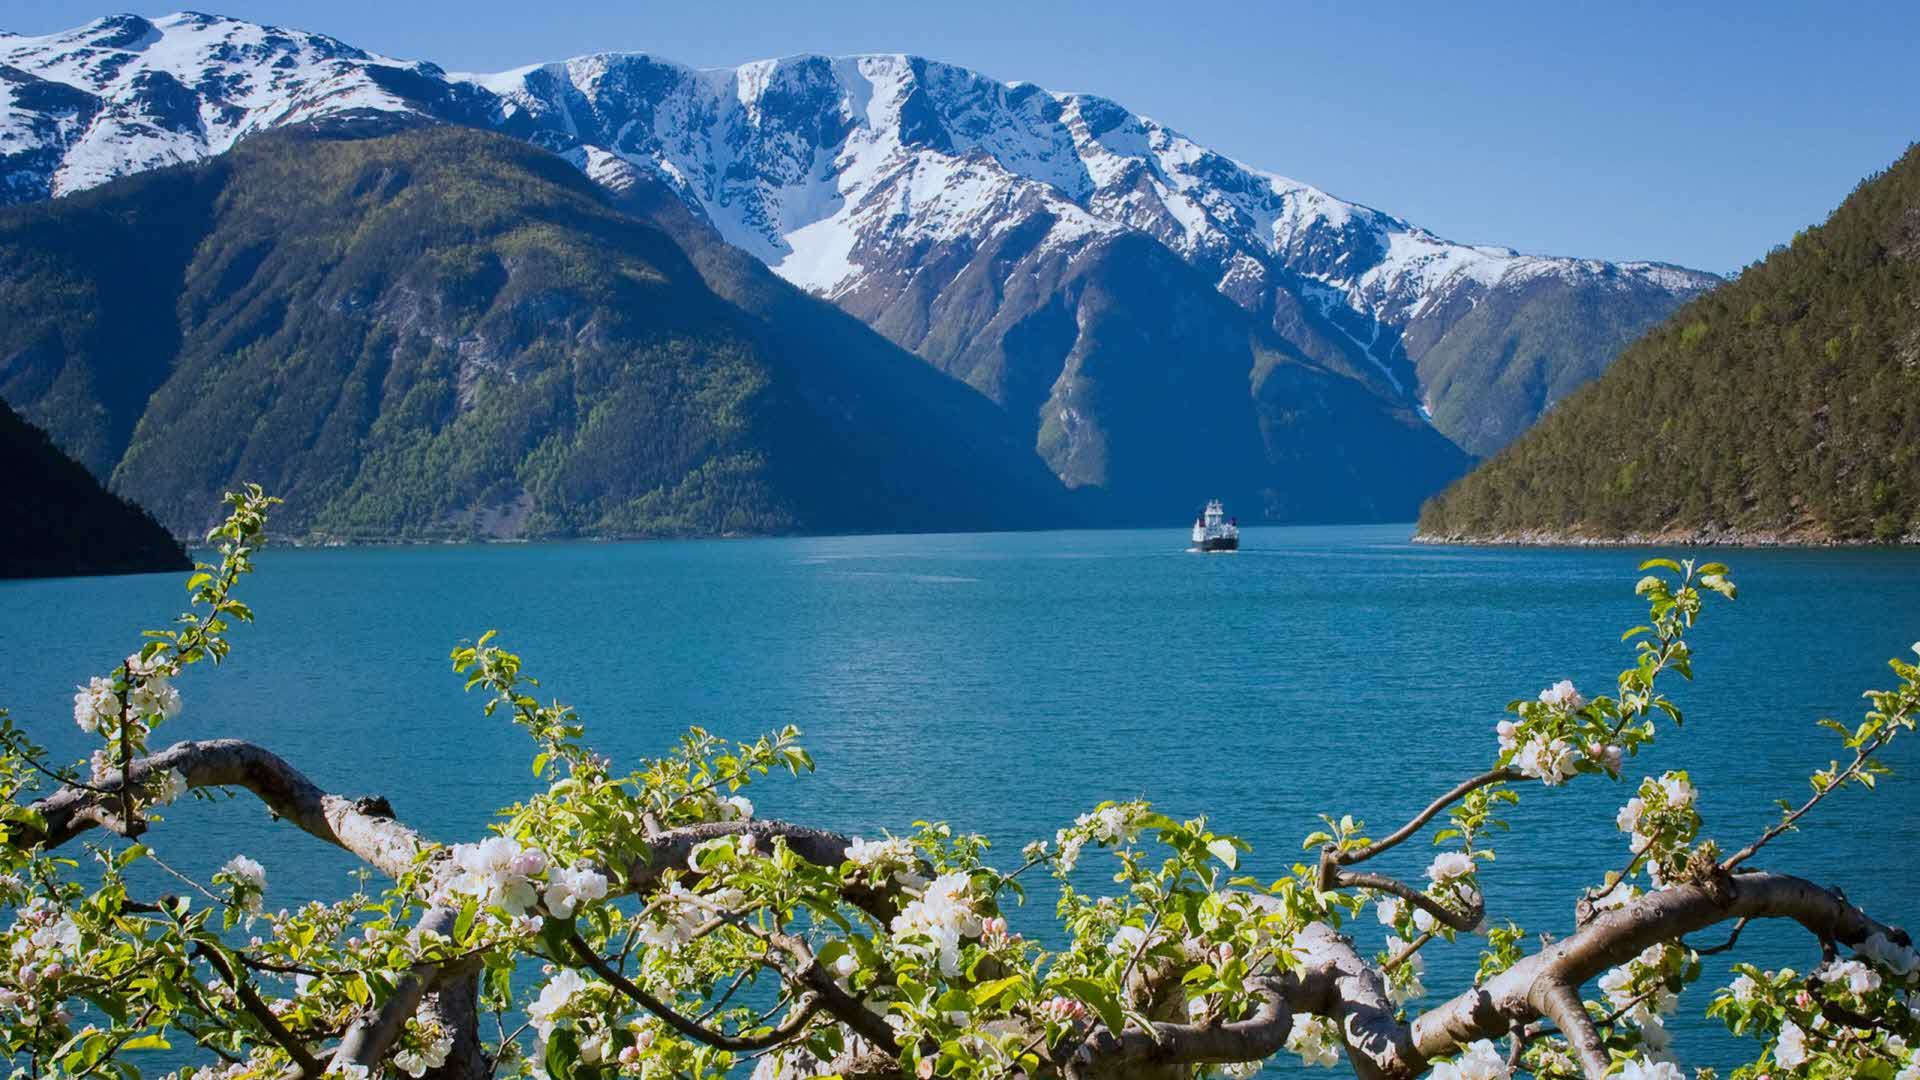 A ferry on the Sognefjord, with flowering fruit trees at the front and snow-capped mountain peaks behind